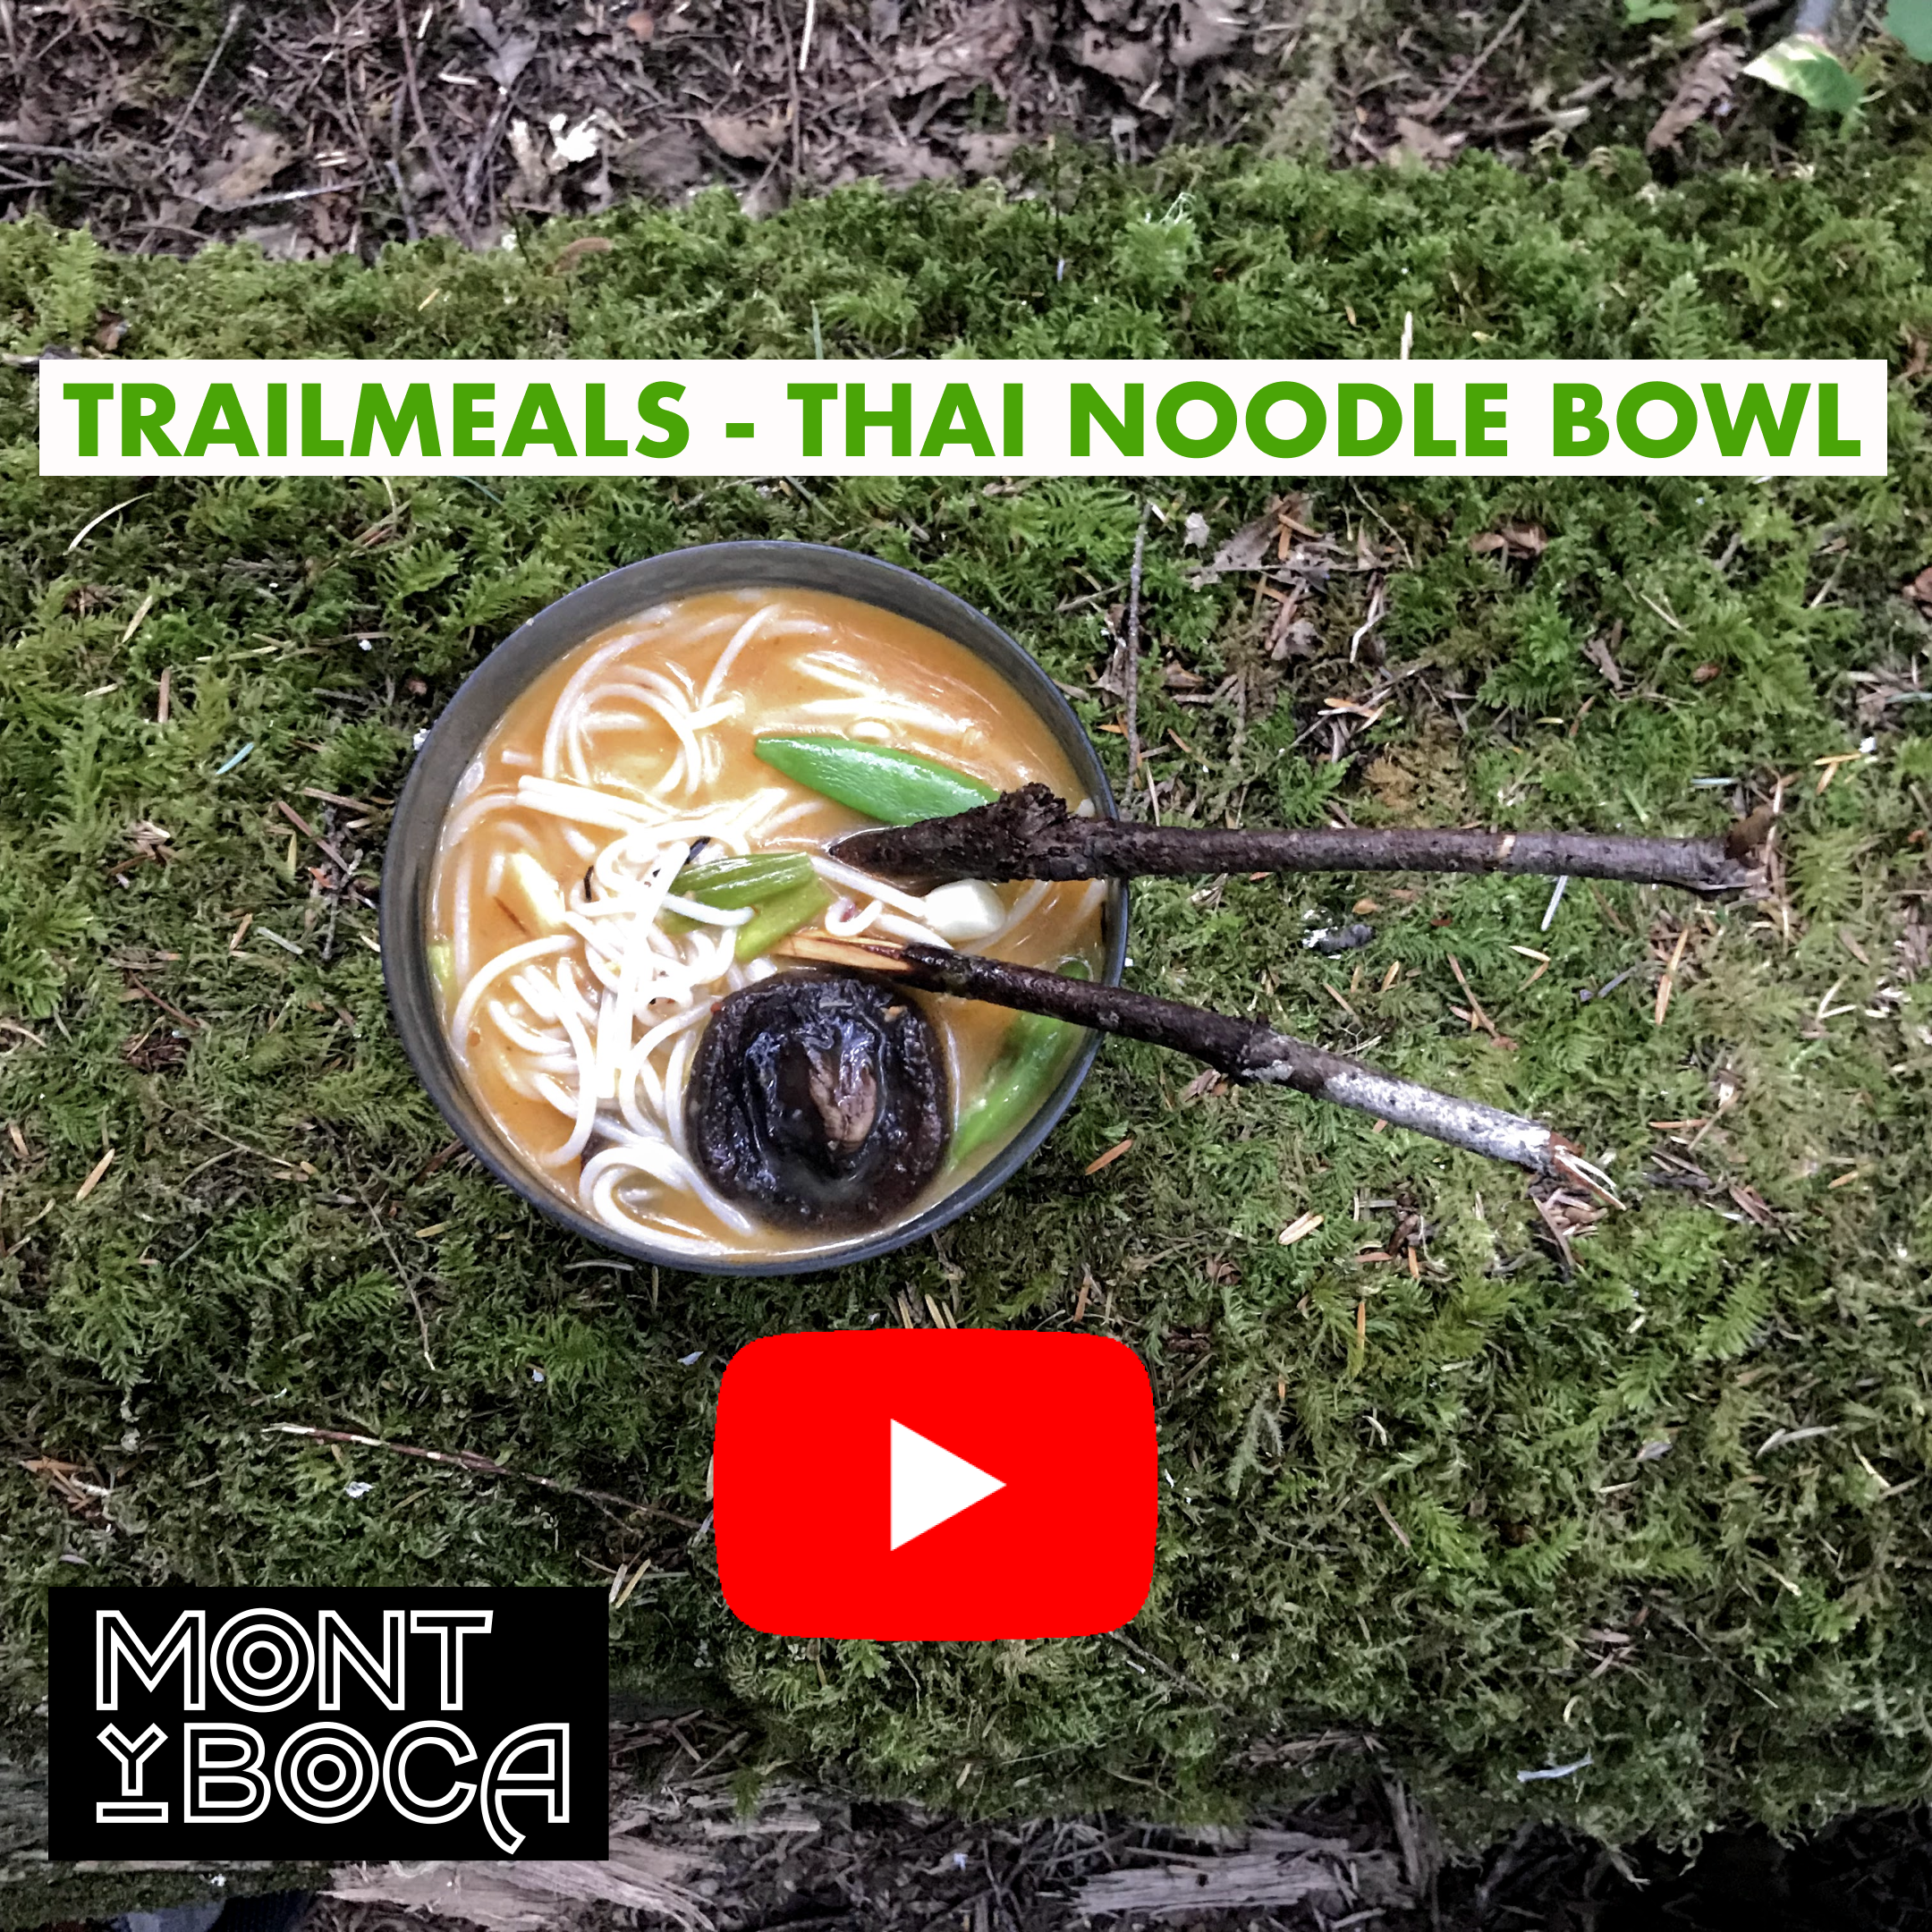 thainoodlebowl.png